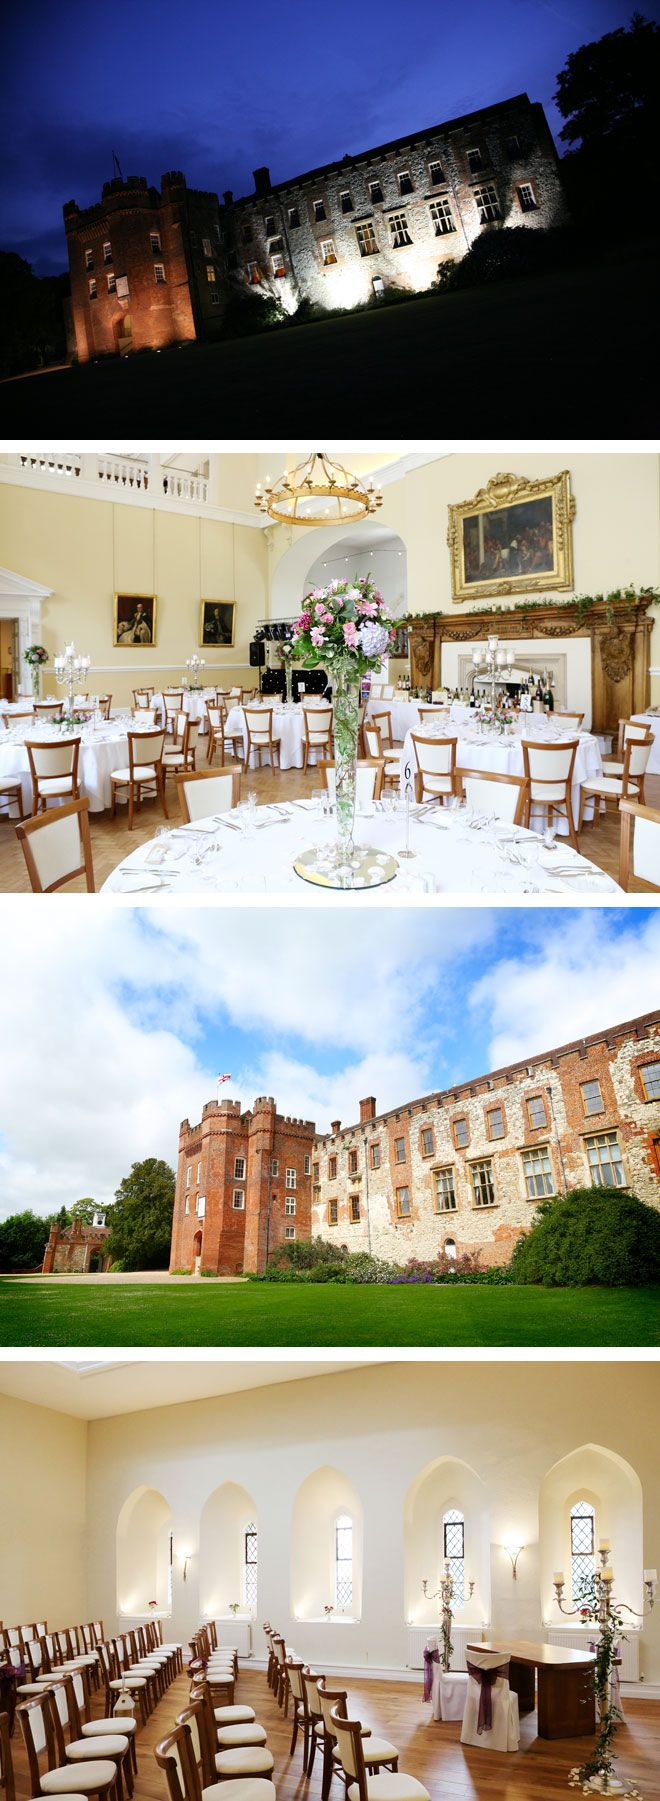 Farnham Castle halloween wedding venue in Surrey | Visit: www.wedding-venues.co.uk